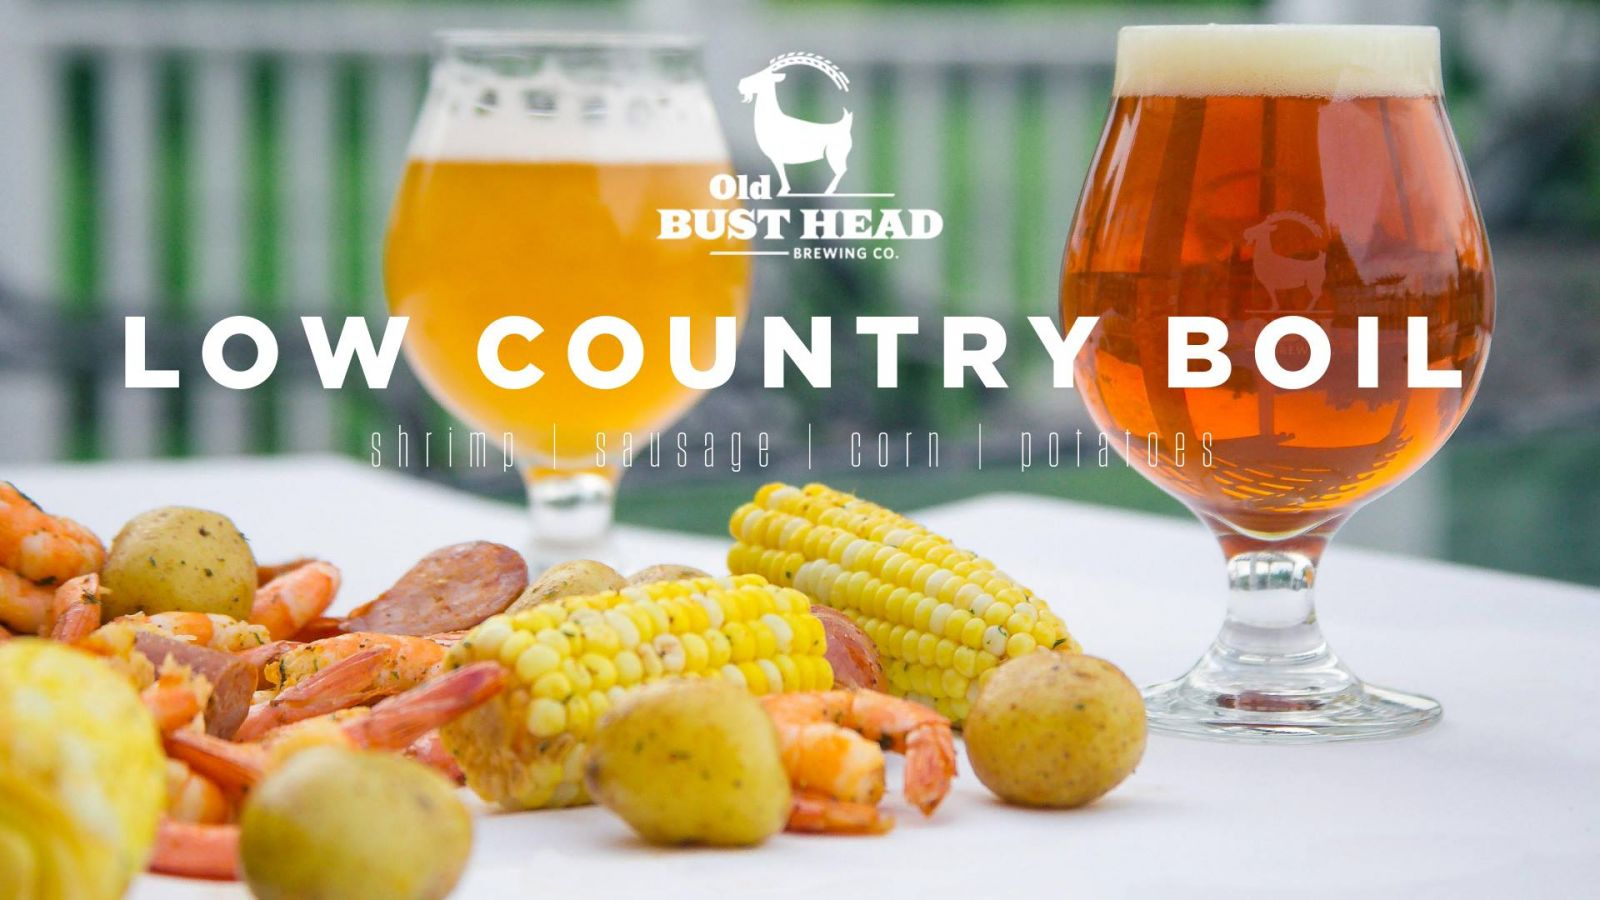 Low Country Shrimp Boil | Old Bust Head